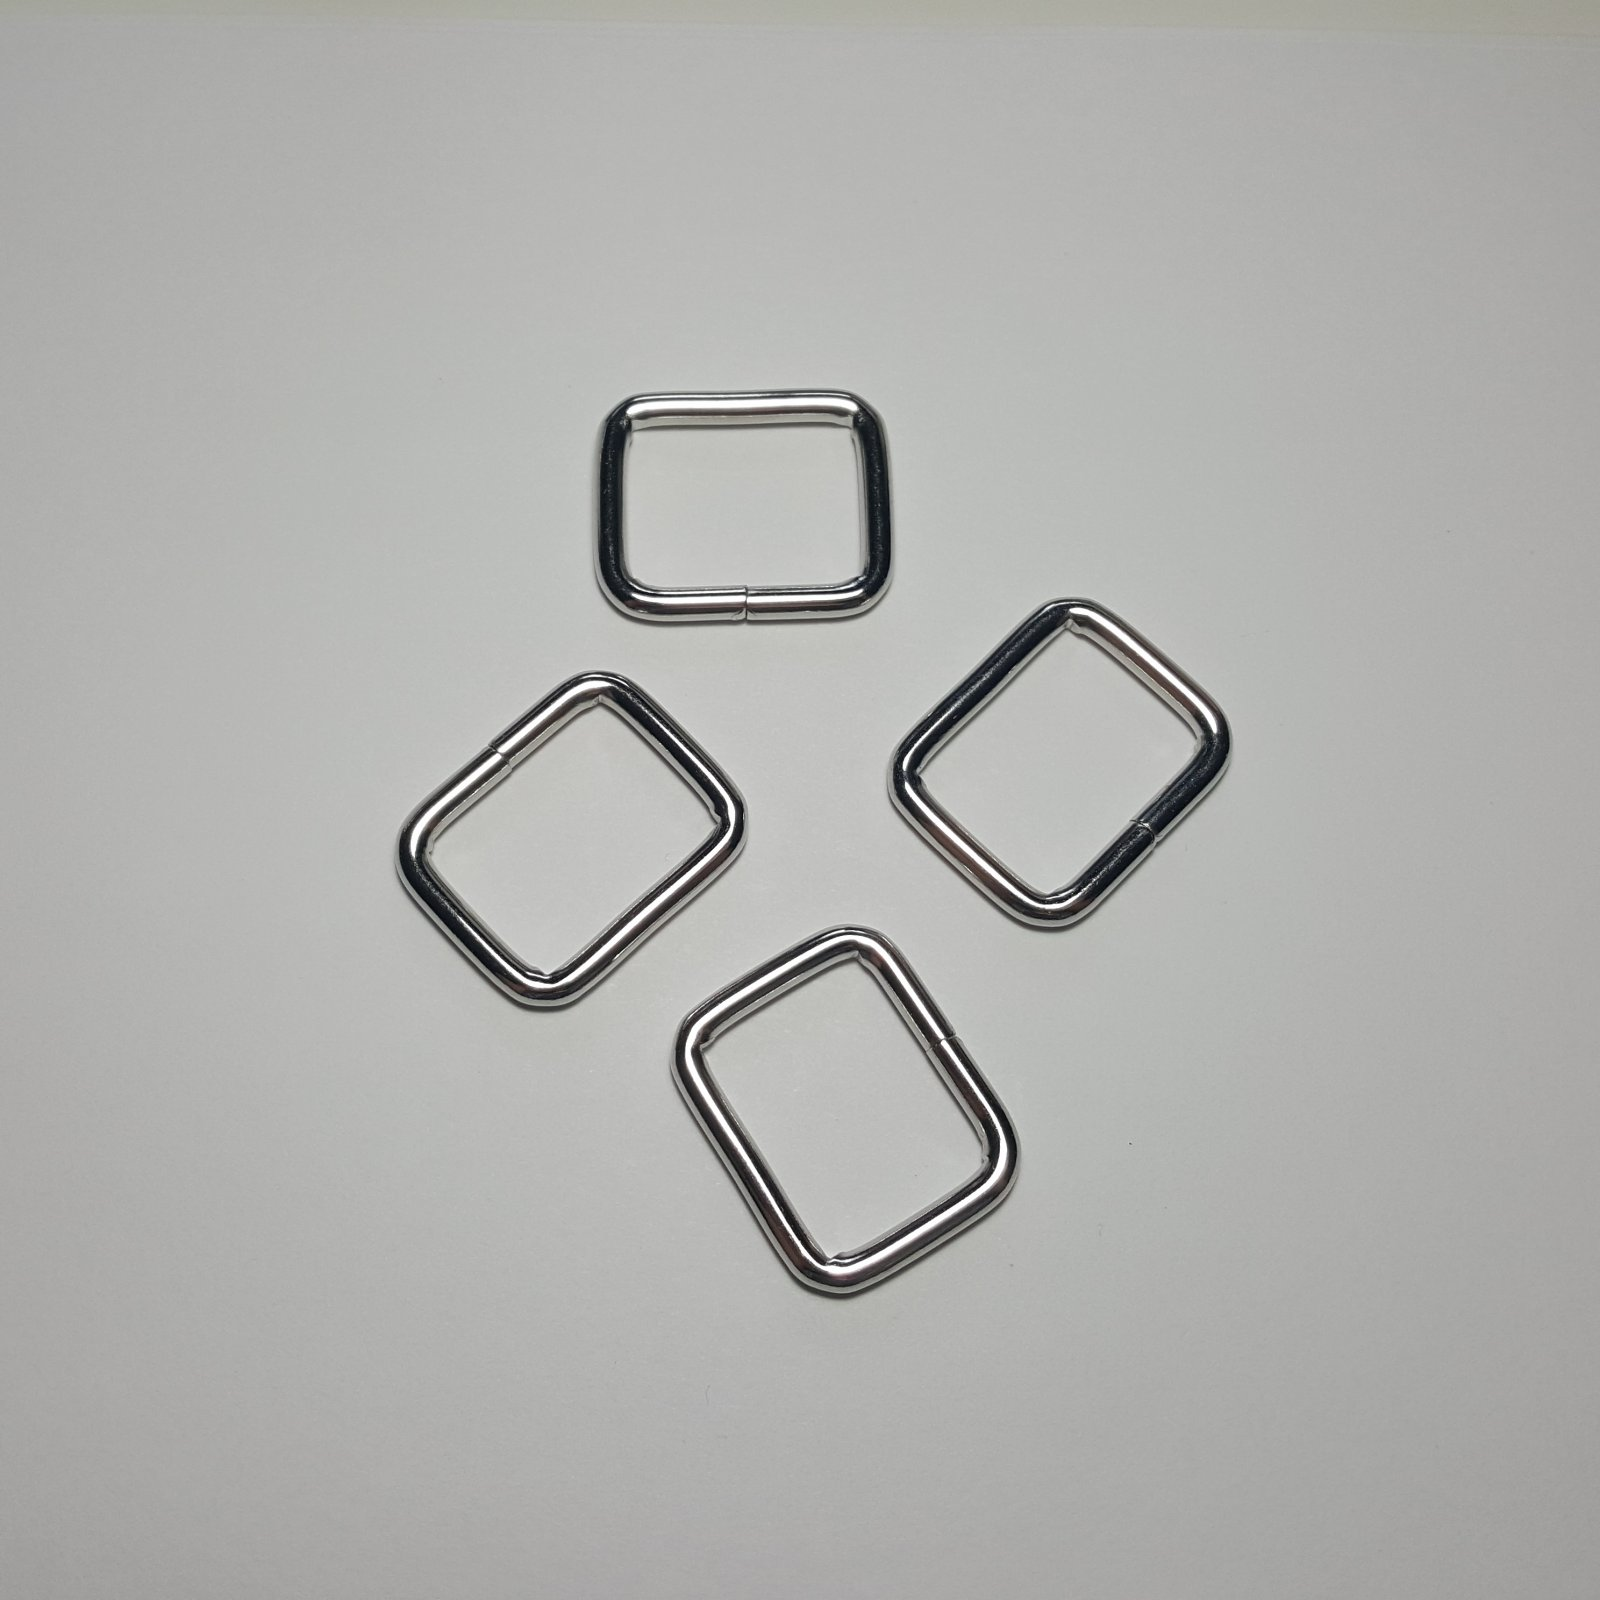 1- 4 Rectangle Rings - Nickel